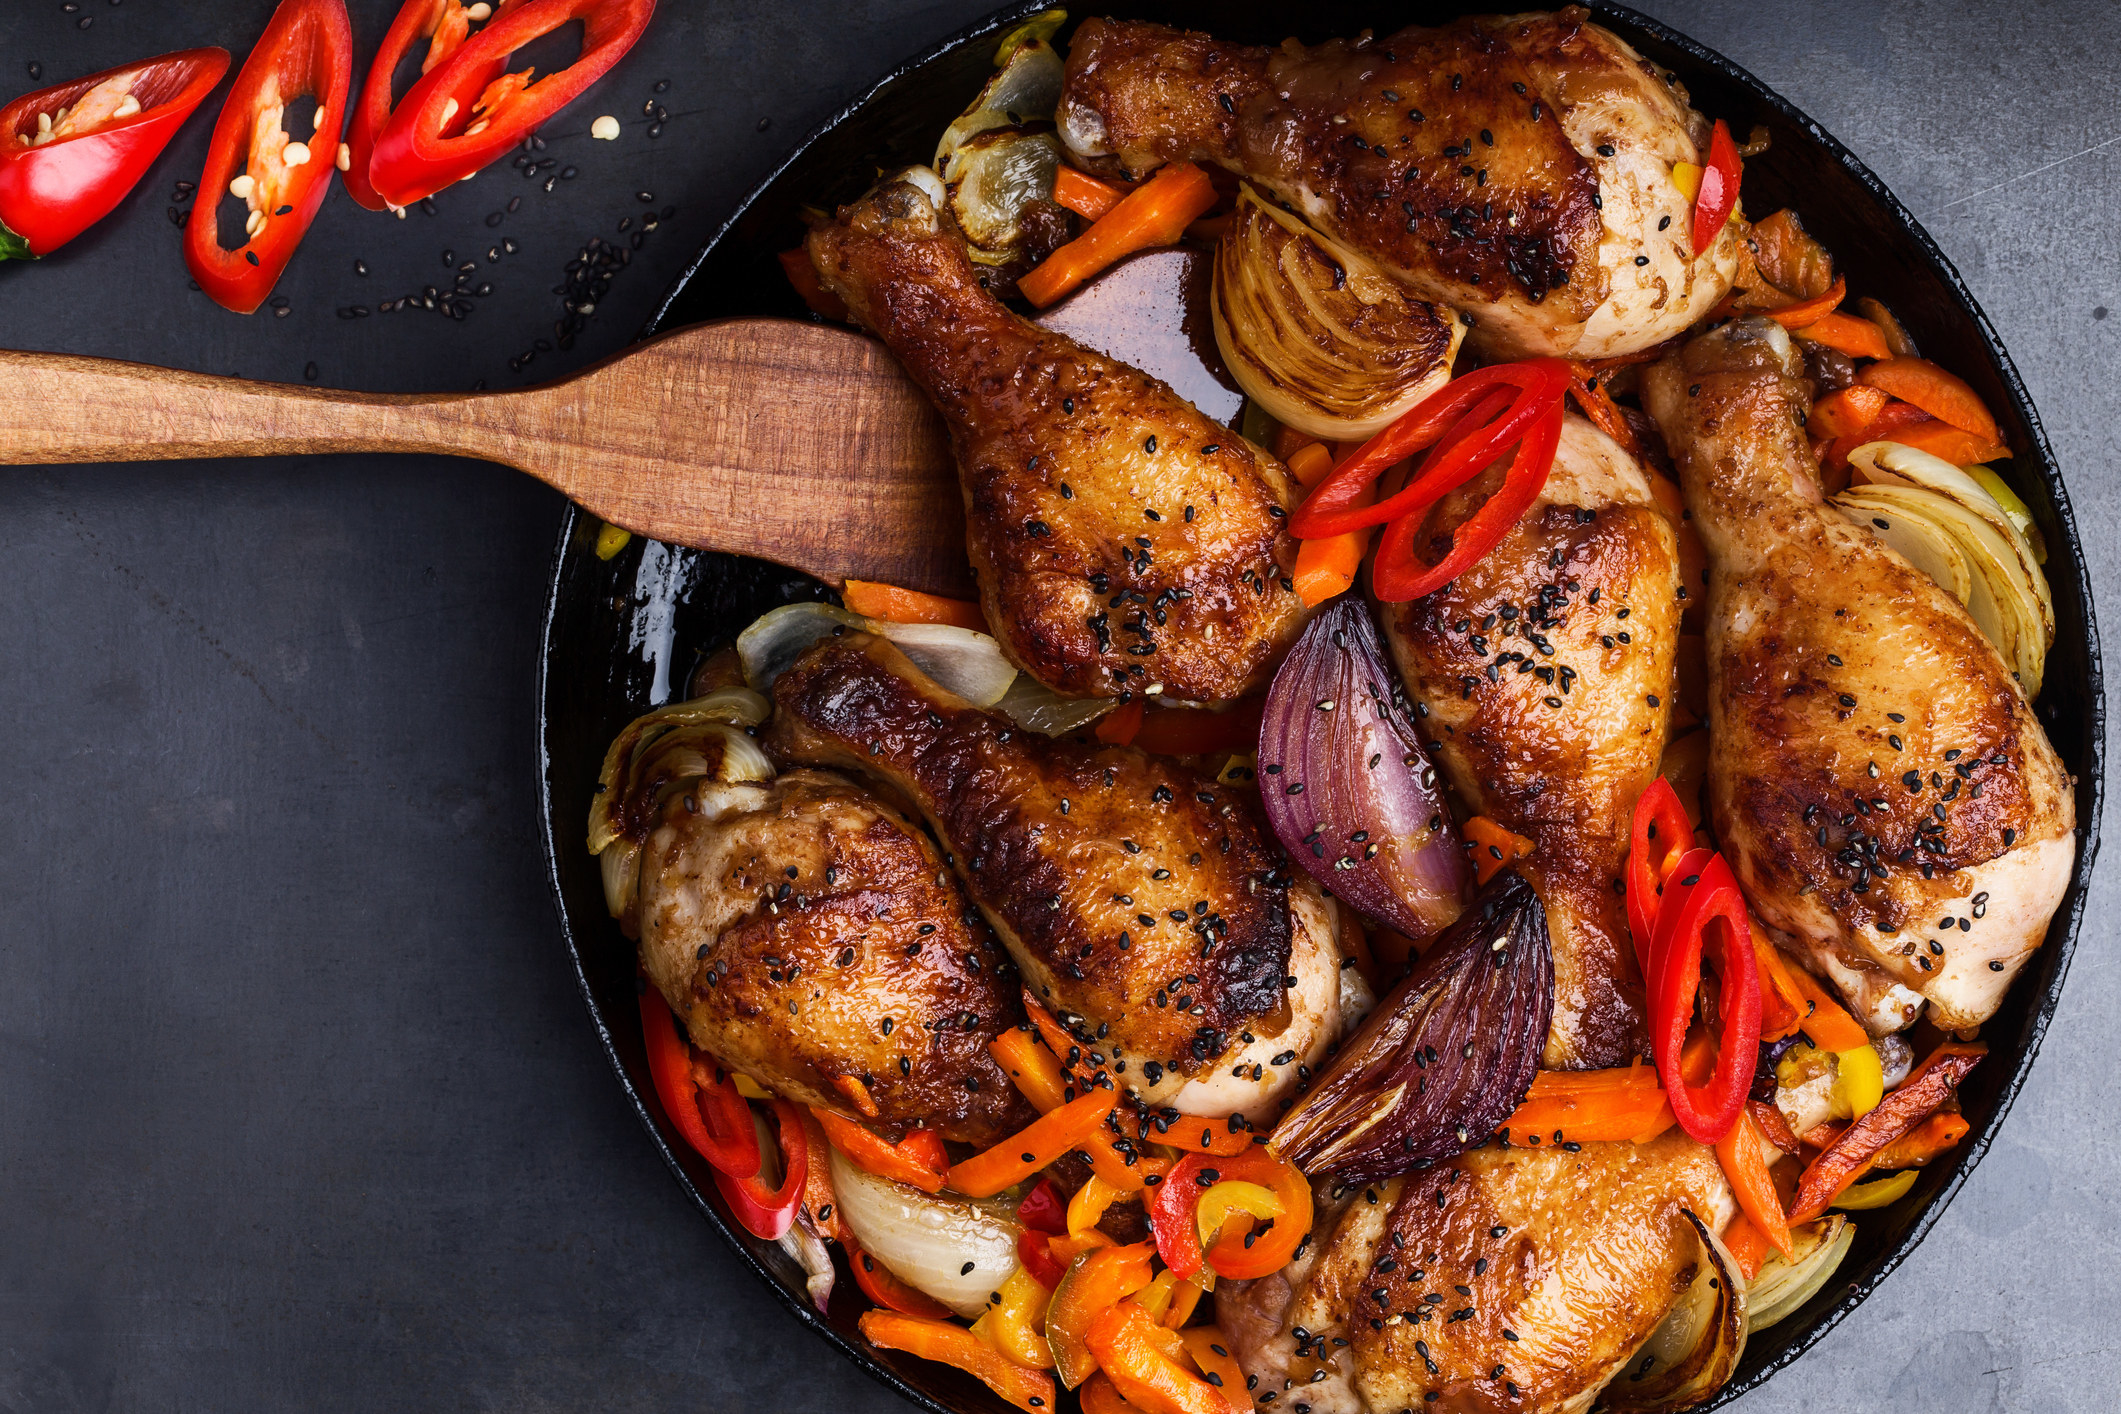 Chicken drumsticks with peppers and garlic in a cast-iron skillet.